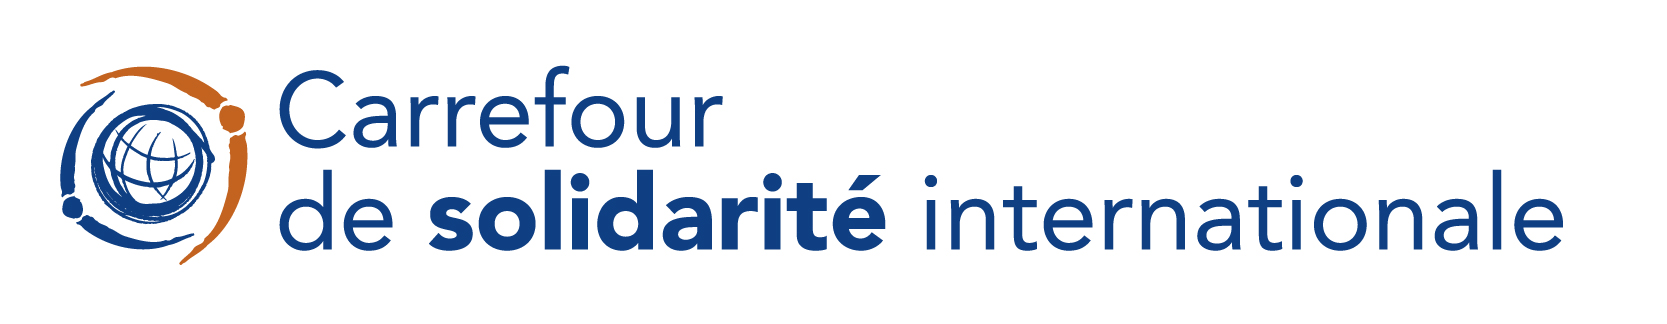 Carrefour de solidarité internationale - Logo